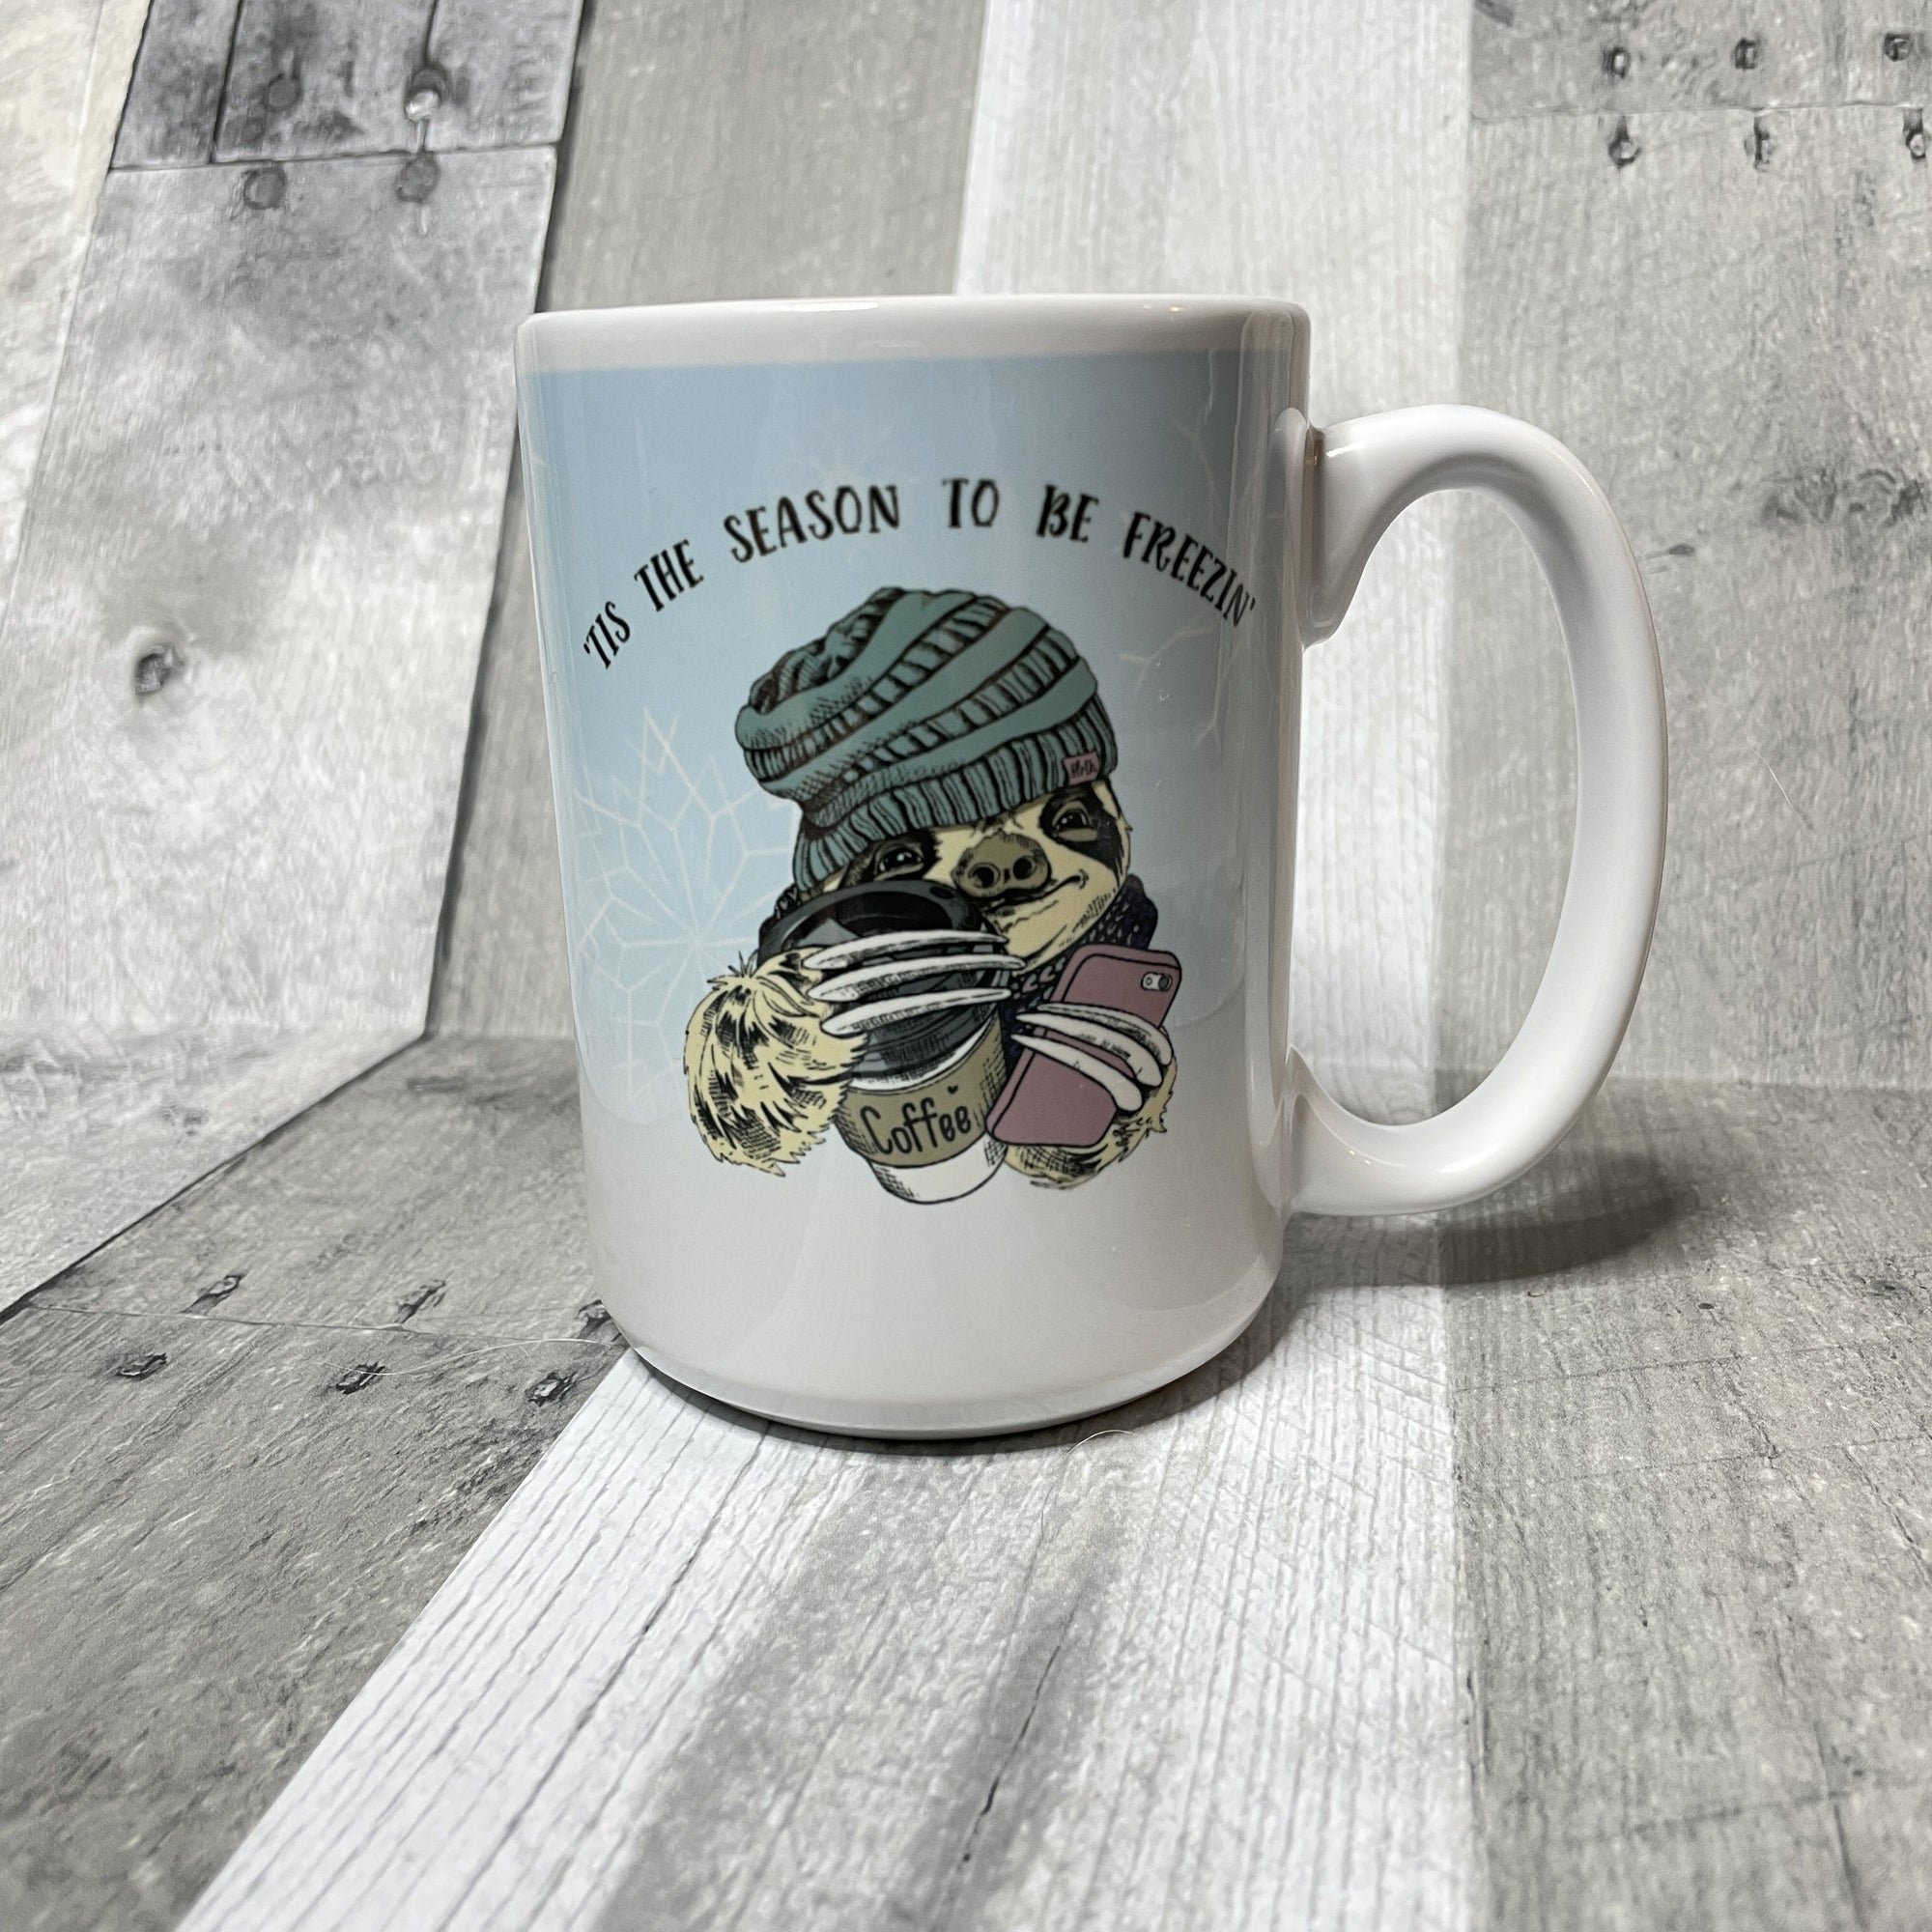 Freezin' Season mug mug The Teal Bandit